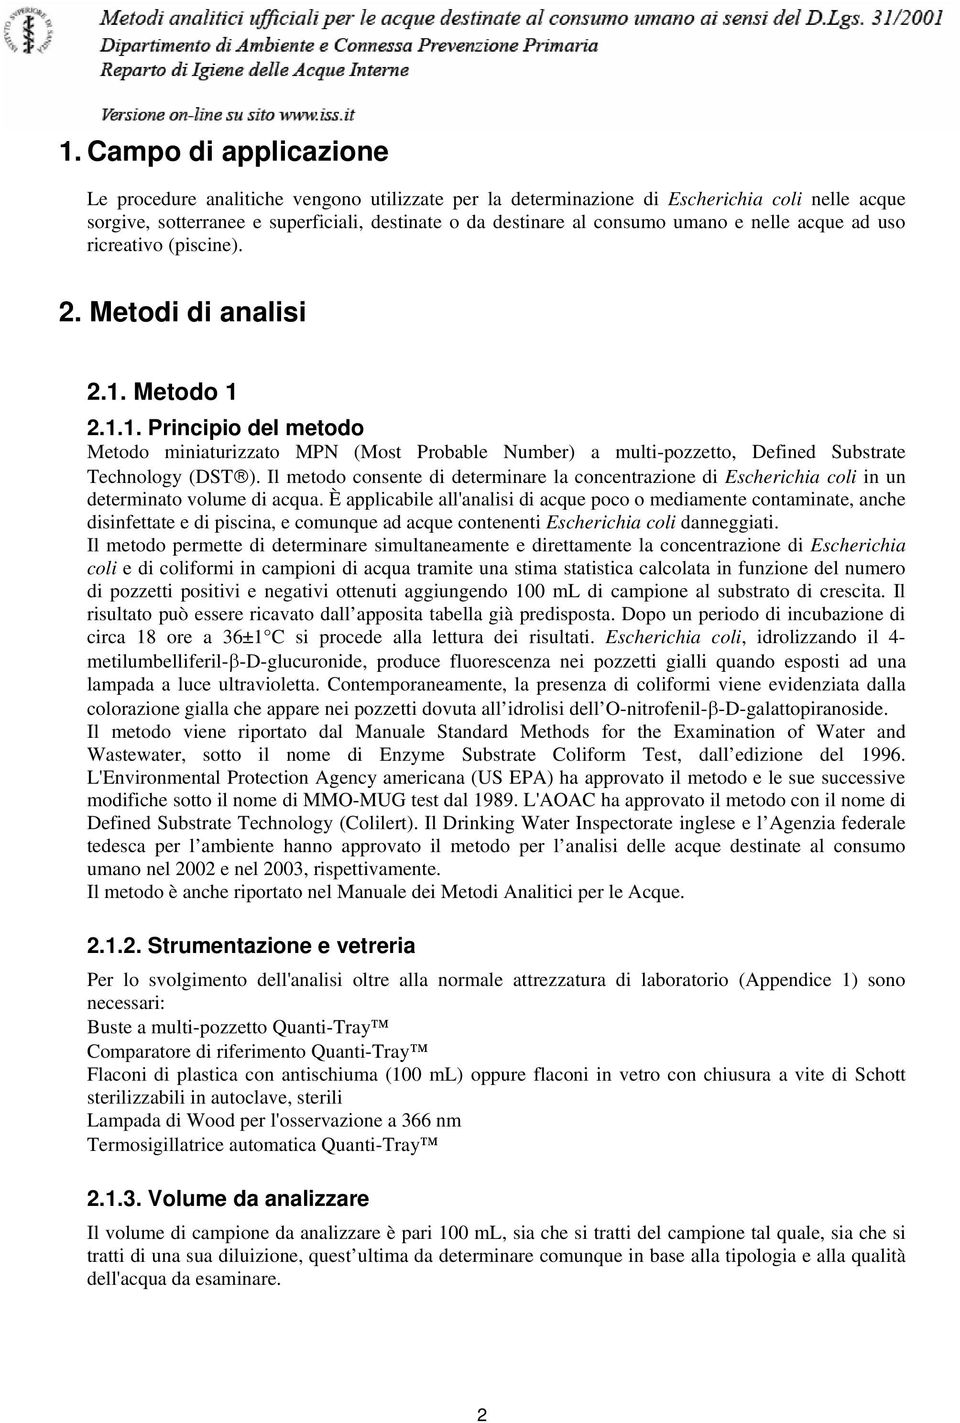 nelle acque ad uso ricreativo (piscine). 2. Metodi di analisi 2.1. Metodo 1 2.1.1. Principio del metodo Metodo miniaturizzato MPN (Most Probable Number) a multi-pozzetto, Defined Substrate Technology (DST ).